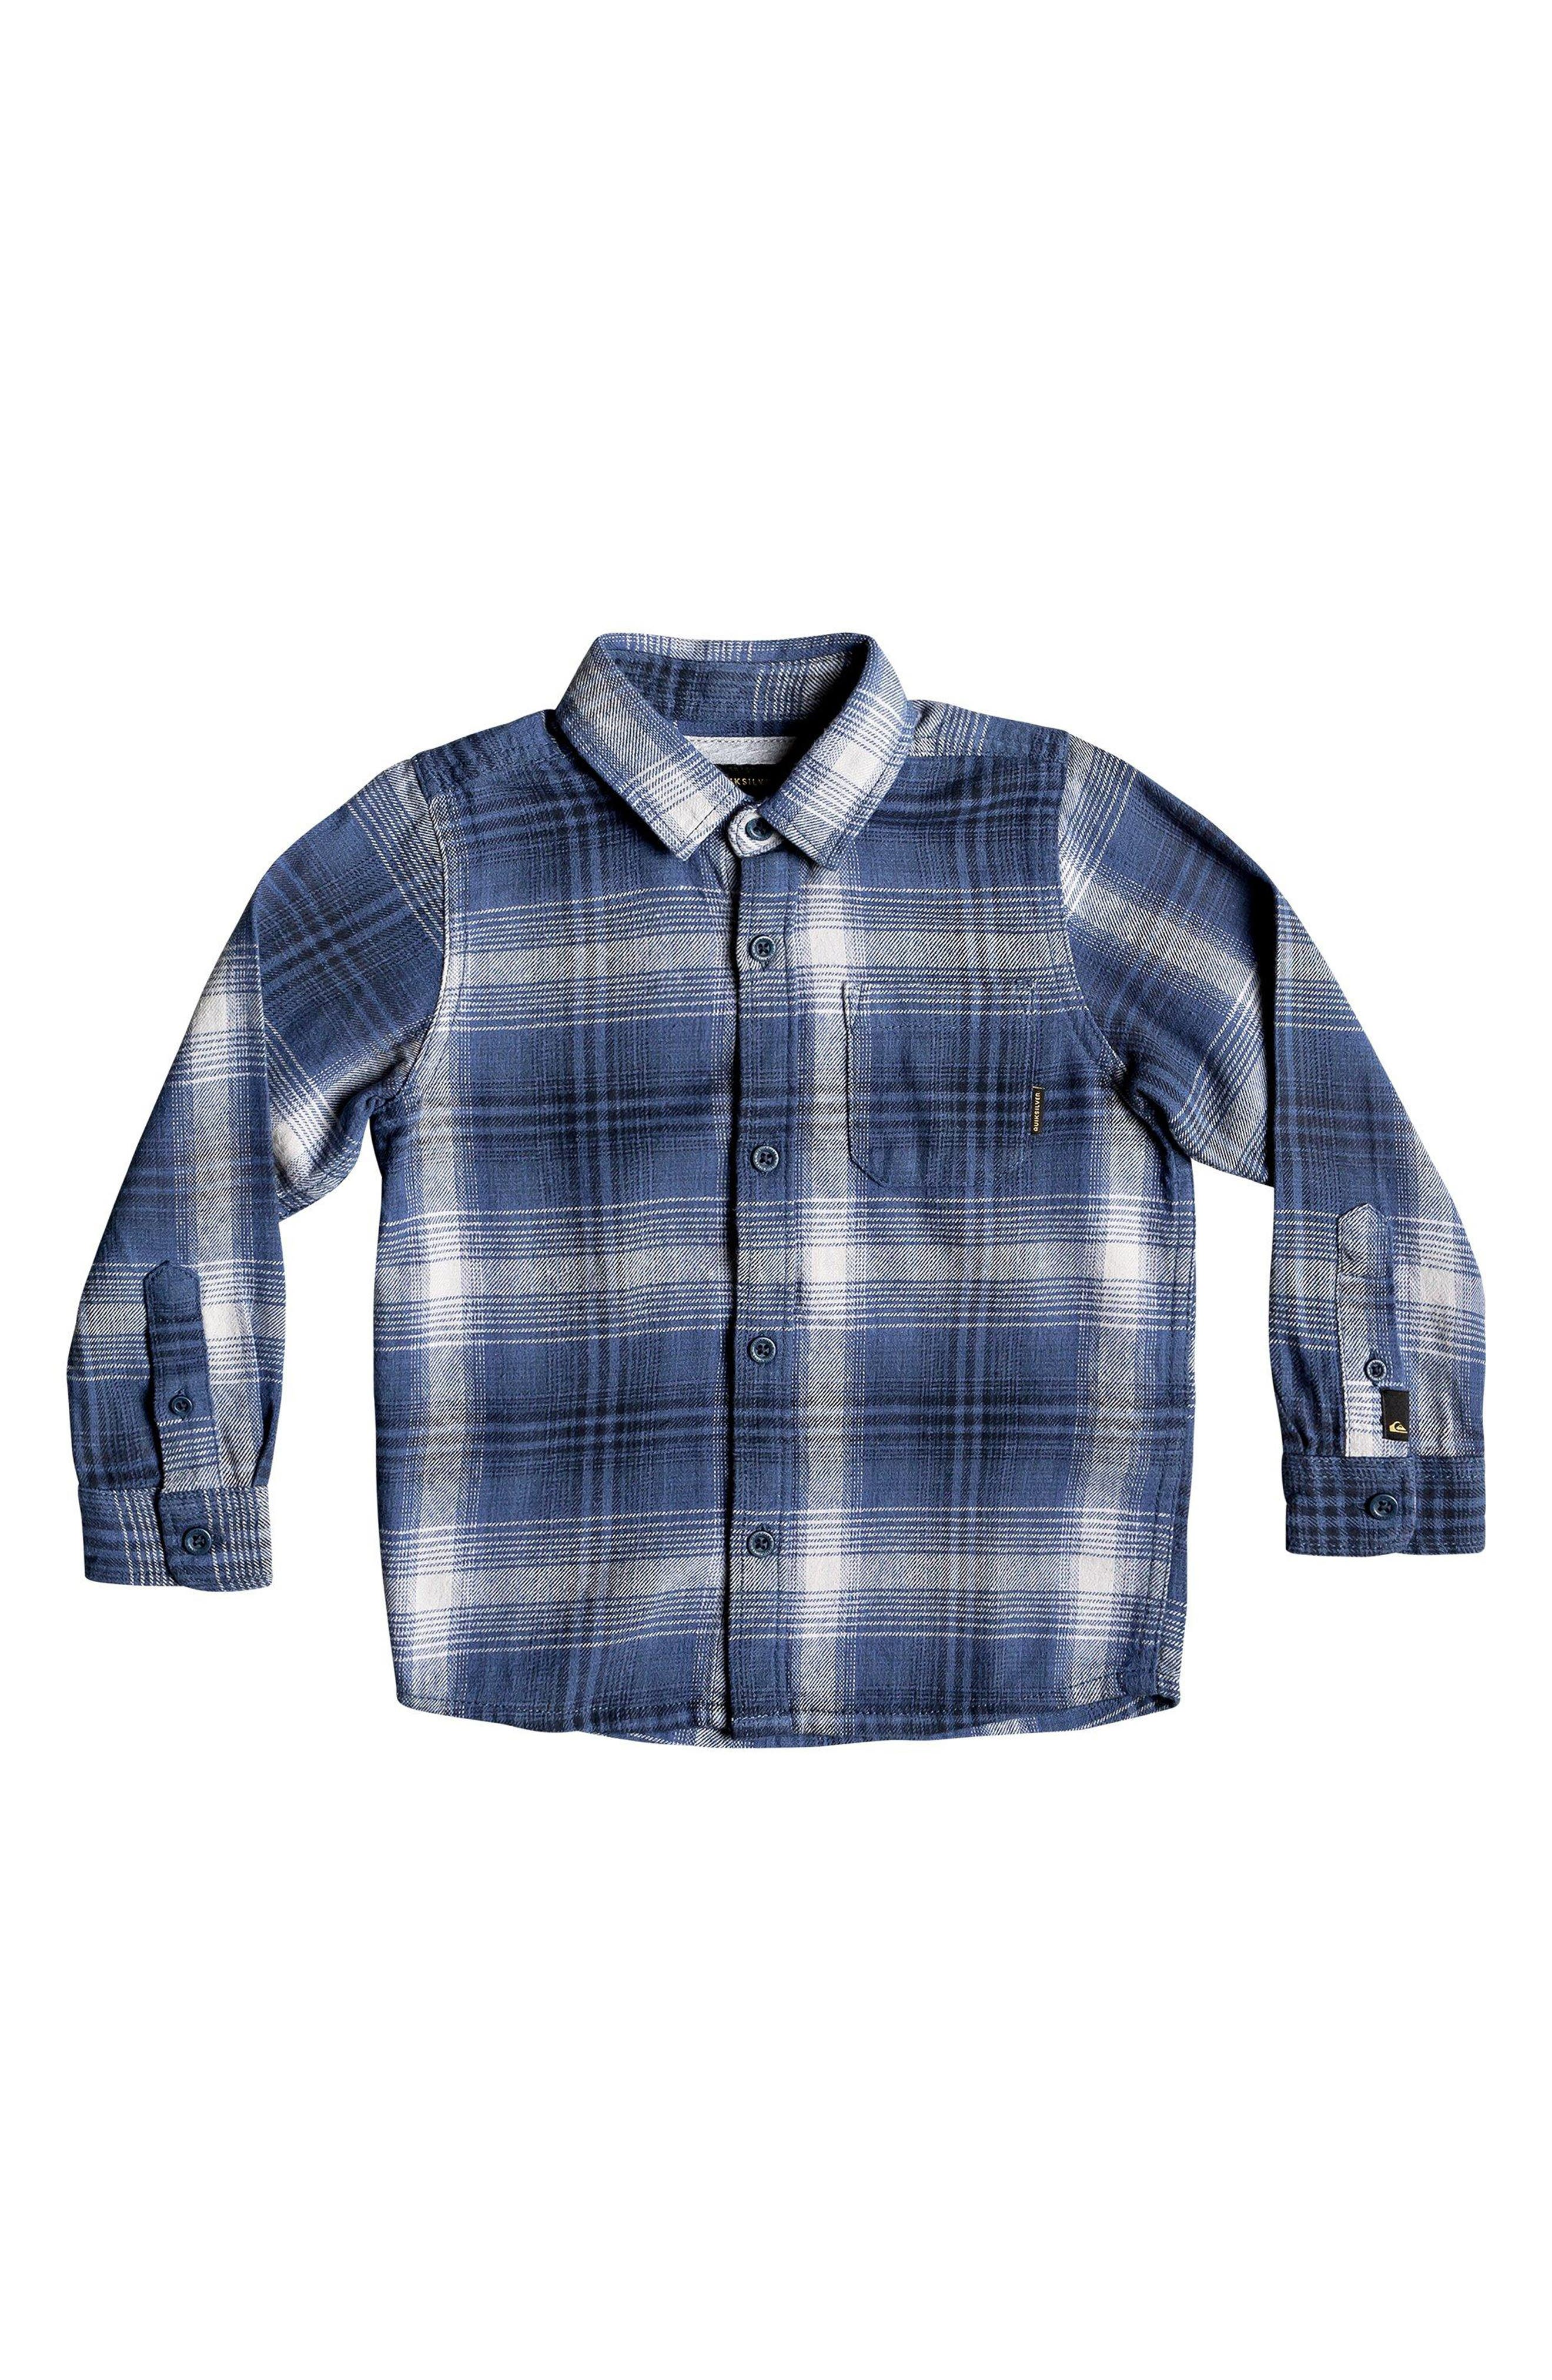 Fatherfly Flanner Shirt,                             Main thumbnail 1, color,                             410